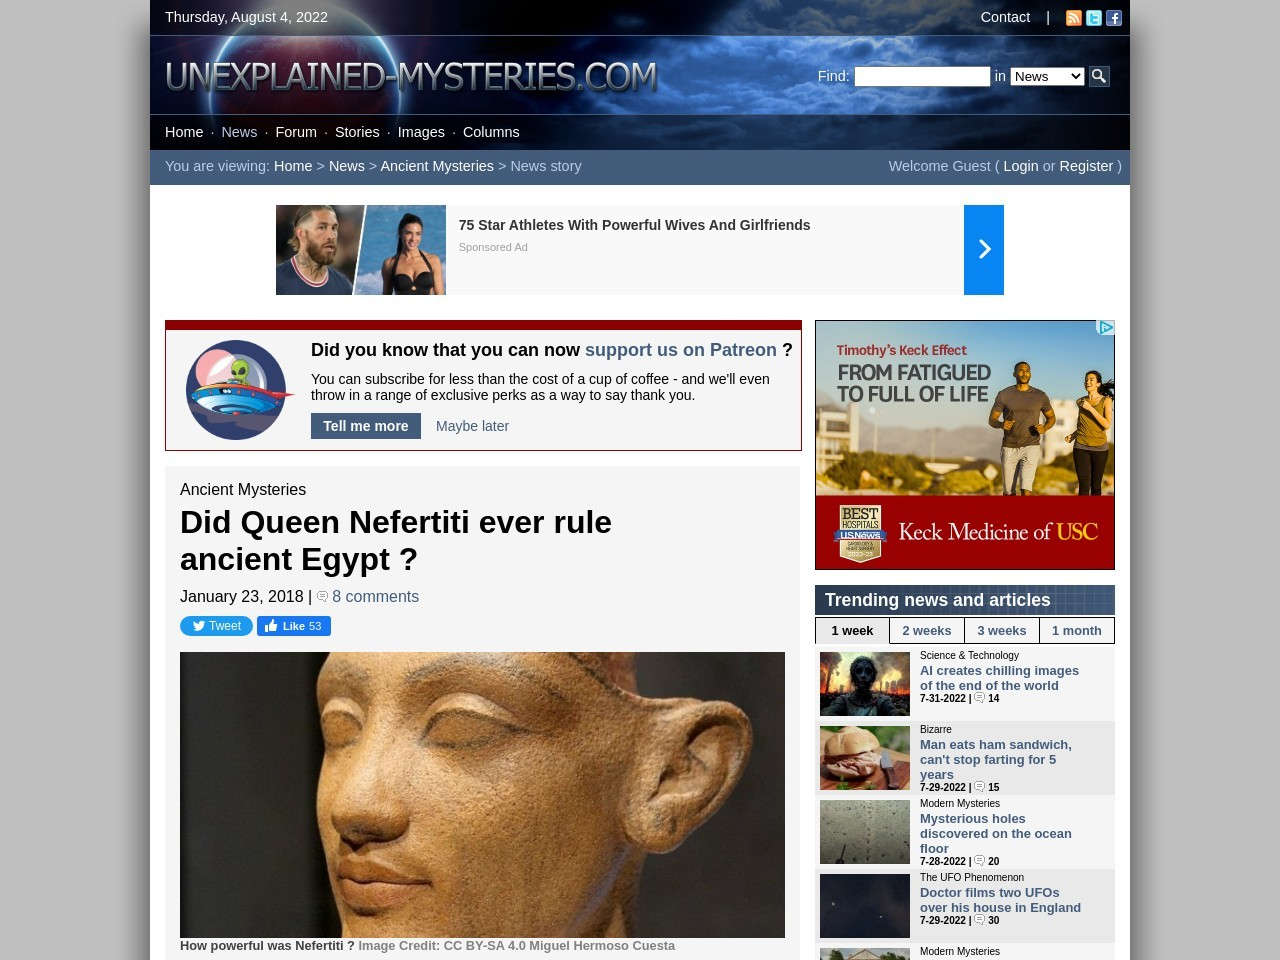 Did Queen Nefertiti ever rule ancient Egypt ?